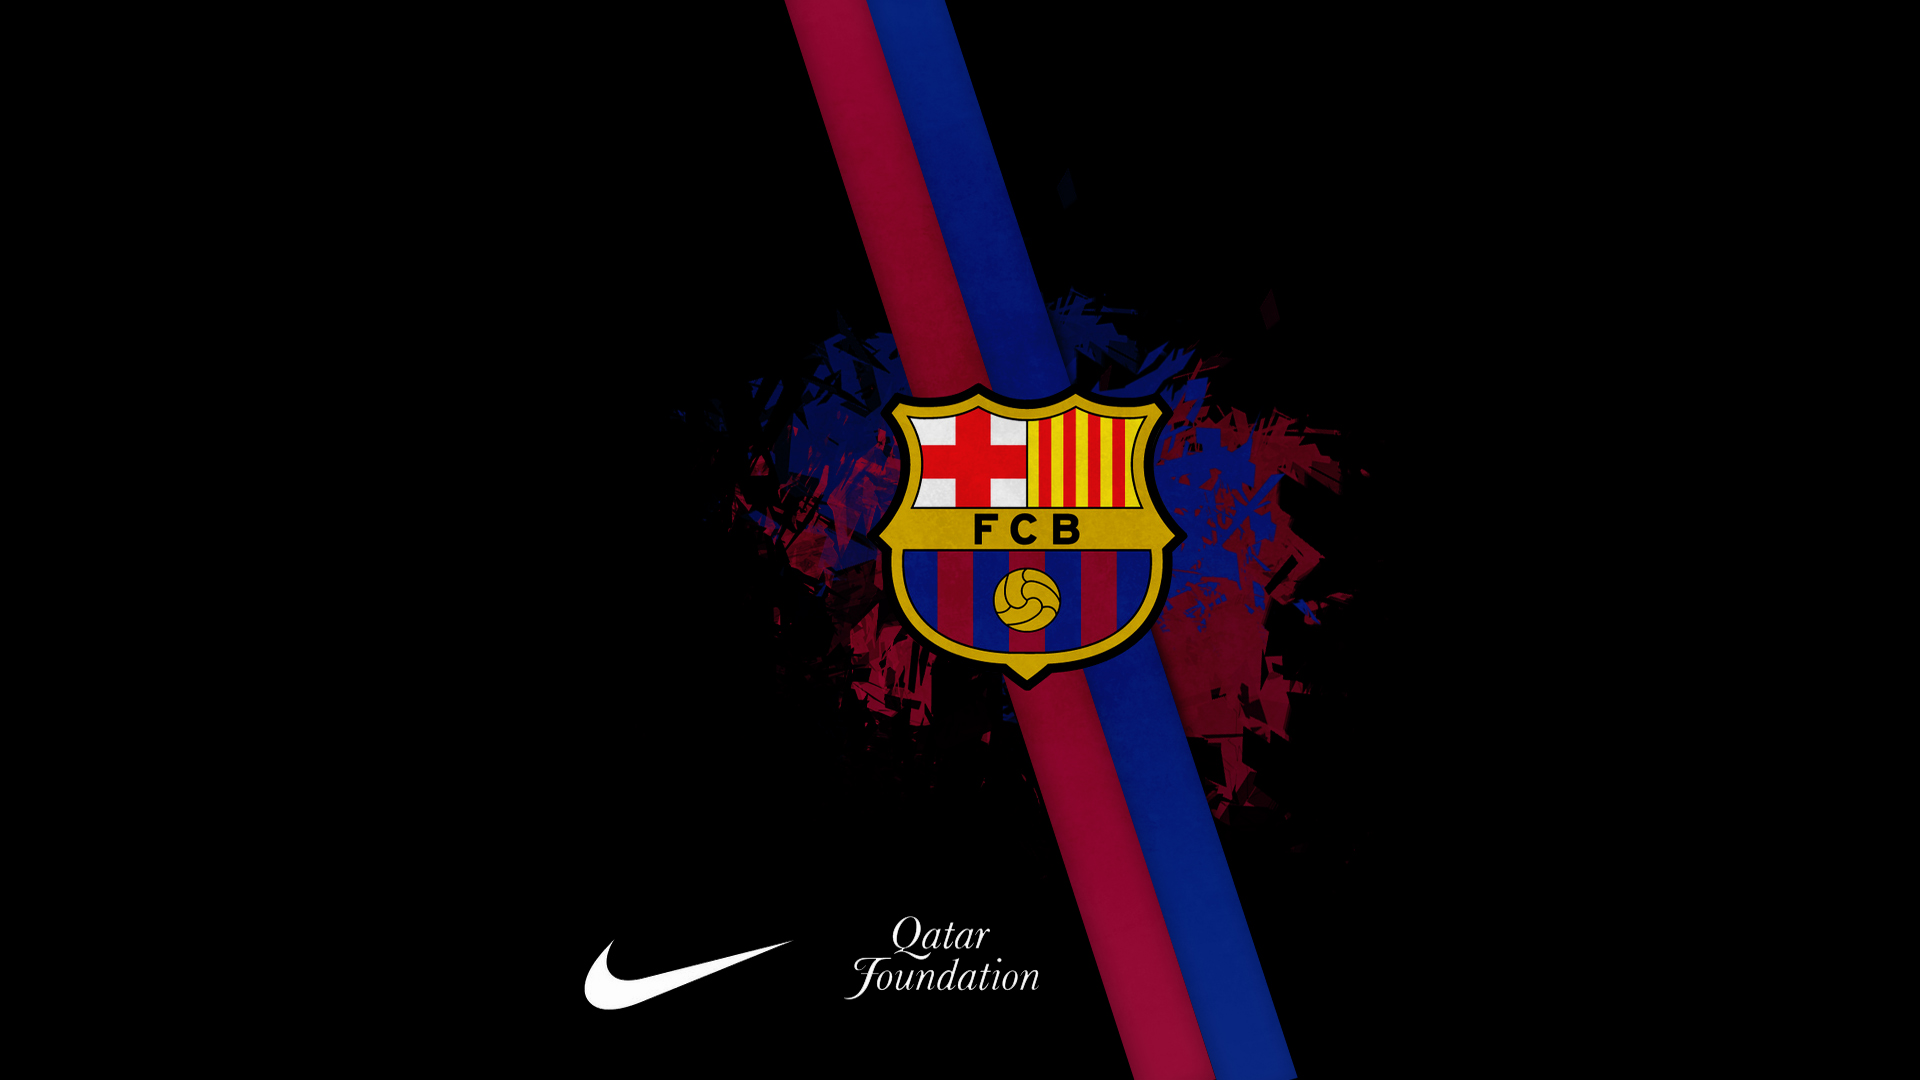 77 ] Fc Barca Wallpaper On WallpaperSafari